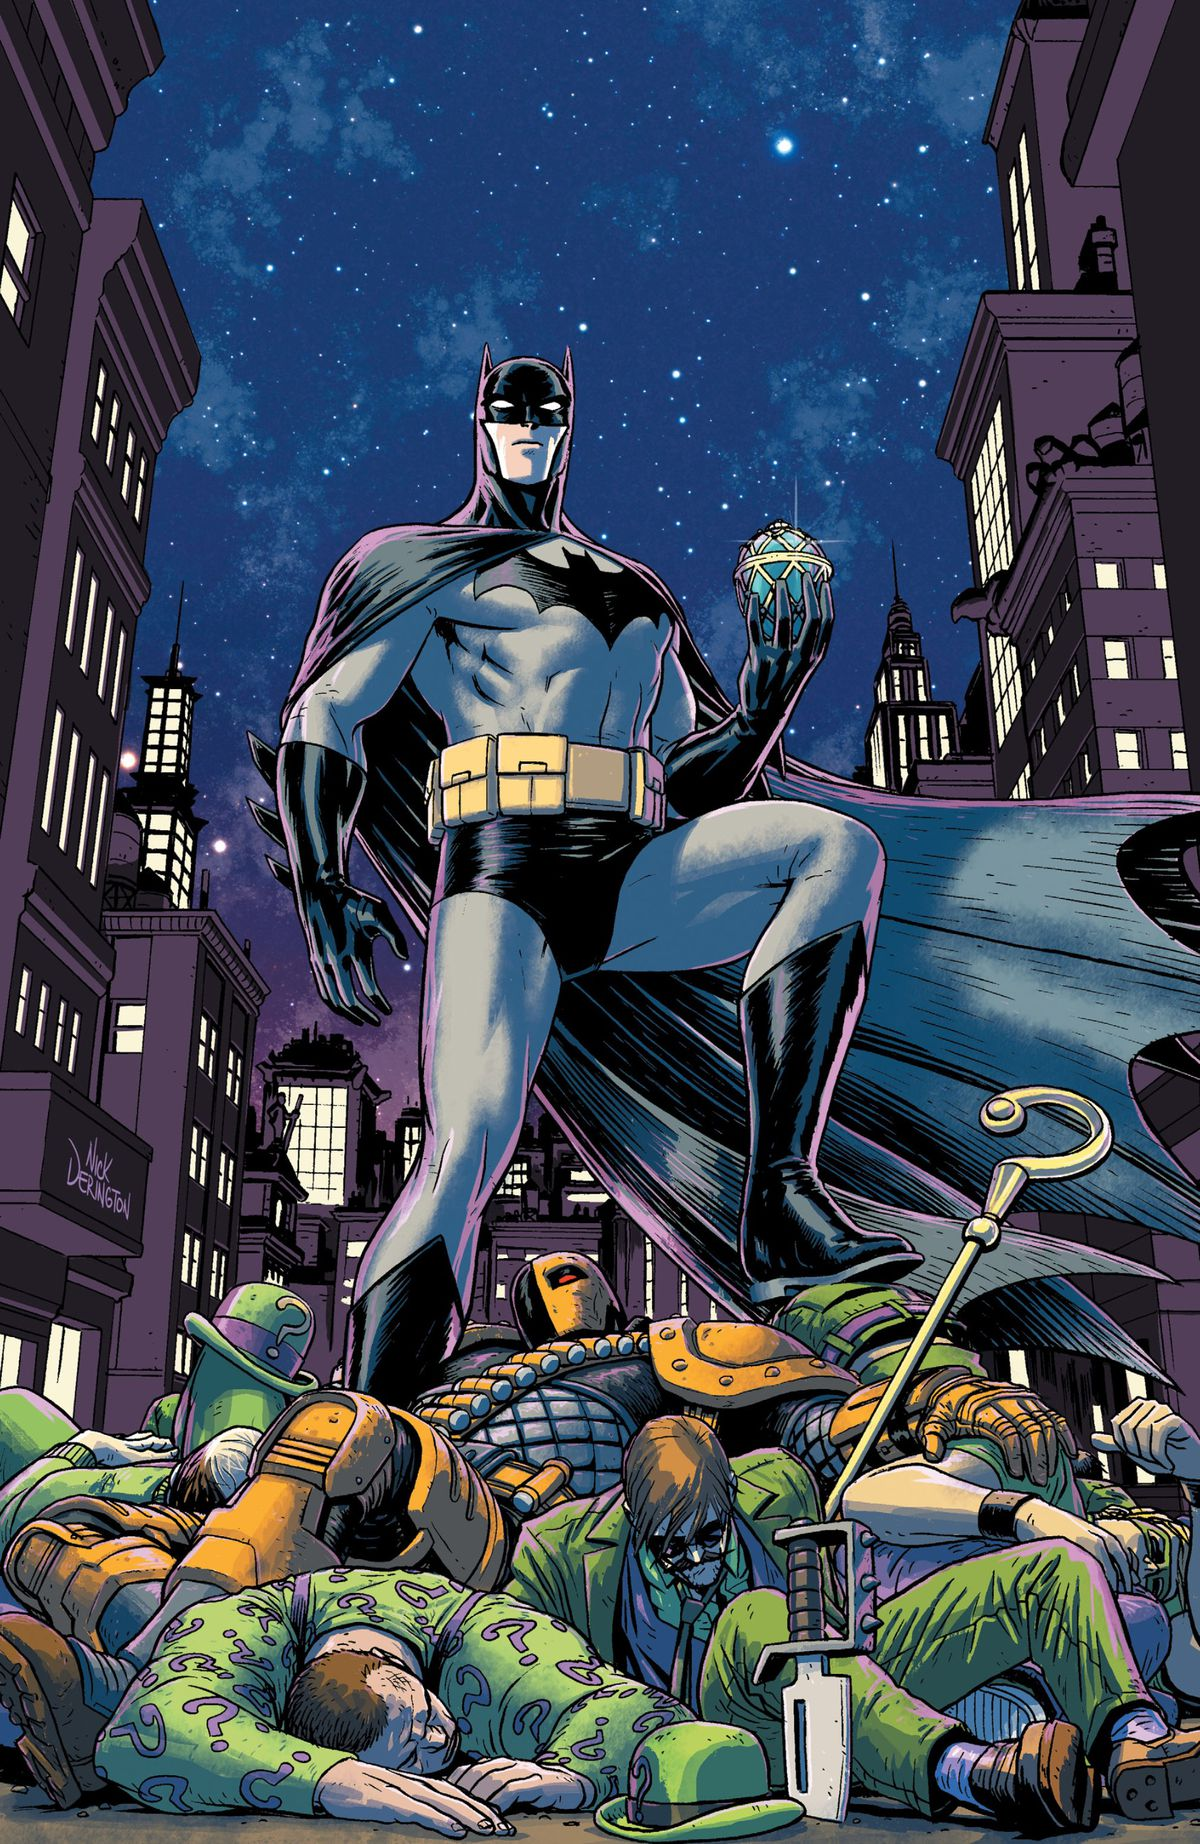 Batman stands on a pile of different people in different Riddler costumes, and Deathstroke, holding a Faberge egg in one hand, on the cover of Batman Universe (2020).